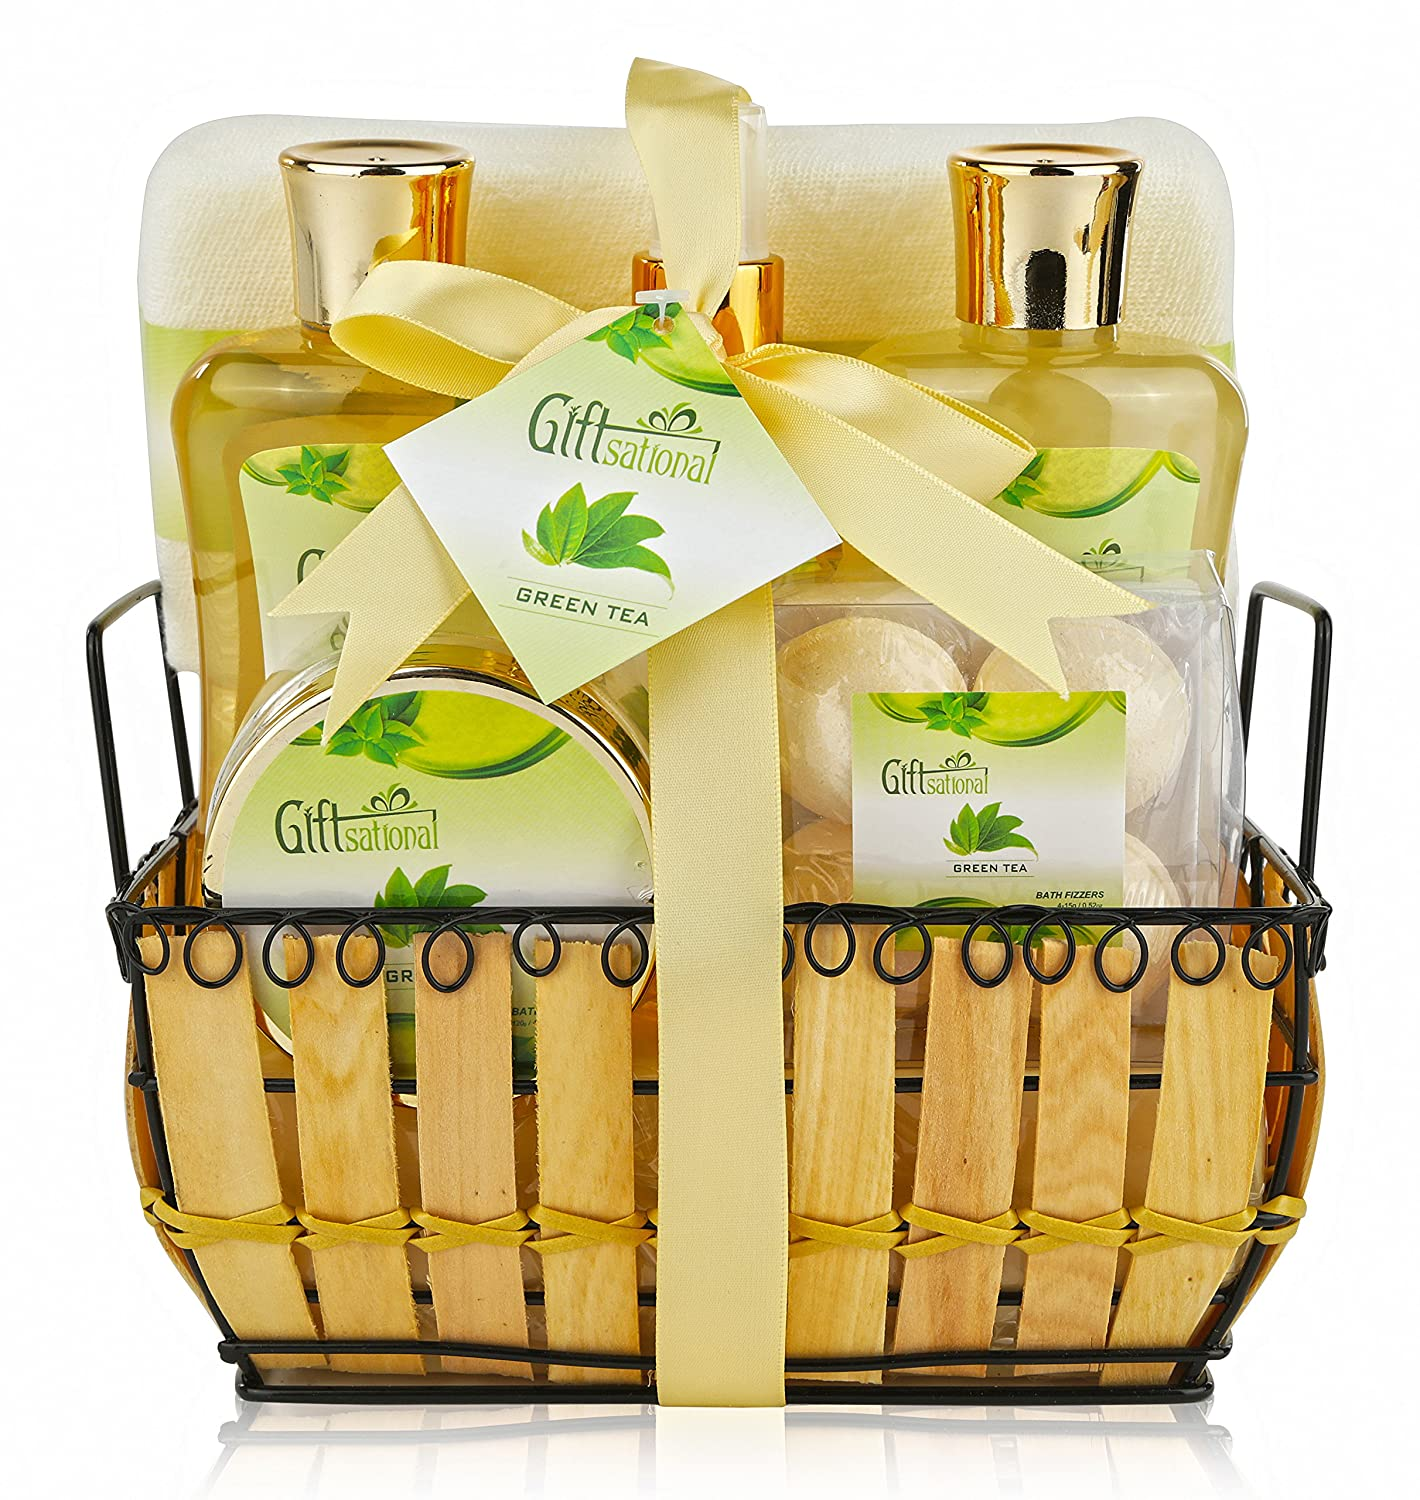 Spa Gift Basket with Rejuvenating Green Tea Fragrance - Great Wedding, Birthday, Anniversary or Graduation Gift for Women - Spa Bath Gift Set Includes Bubble Bath, Bath Salts, Bath Bombs and More